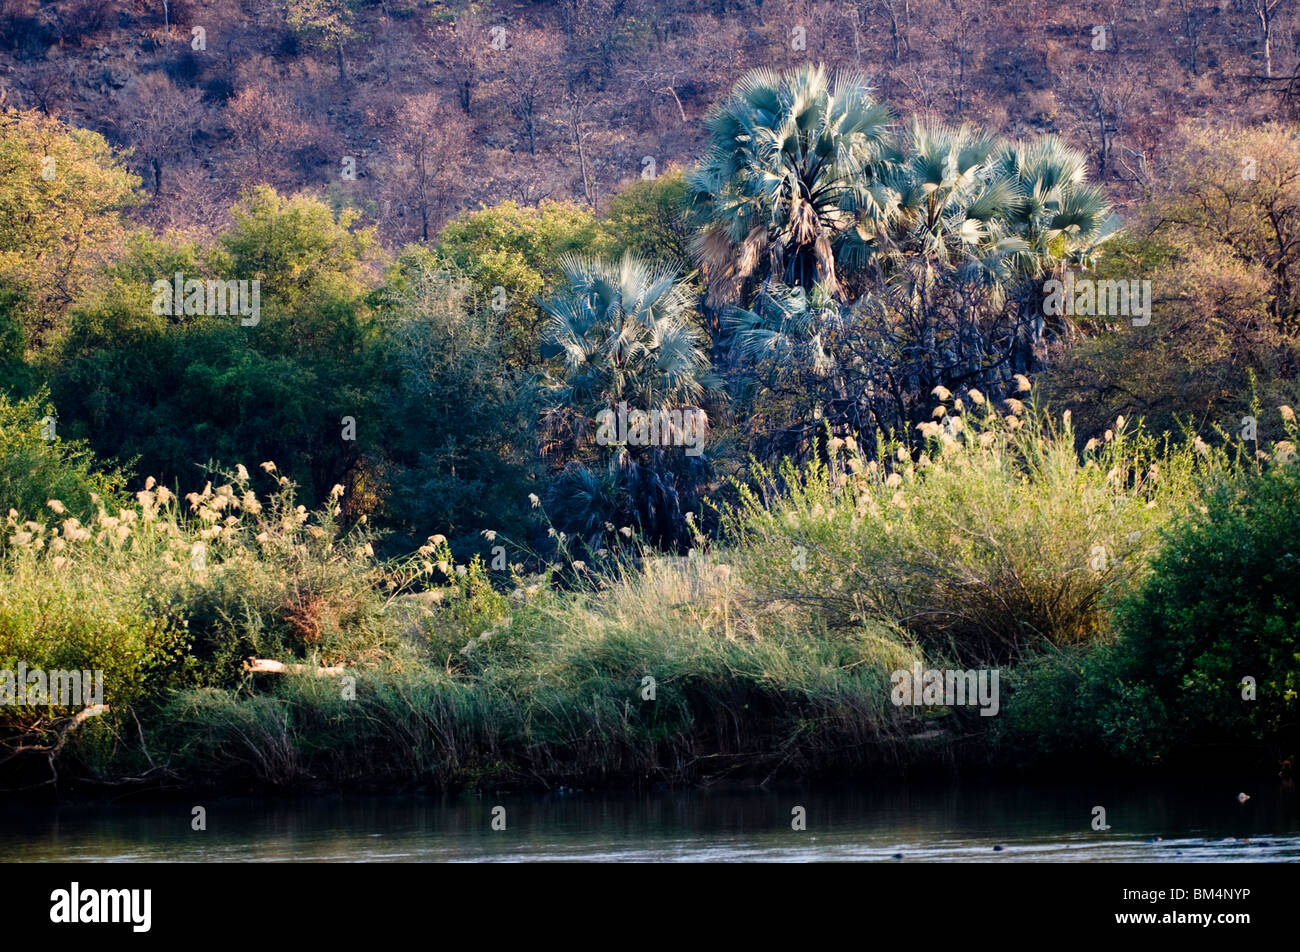 The Kunene river near the kunene river lodge, Kaokoland, Namibia. - Stock Image